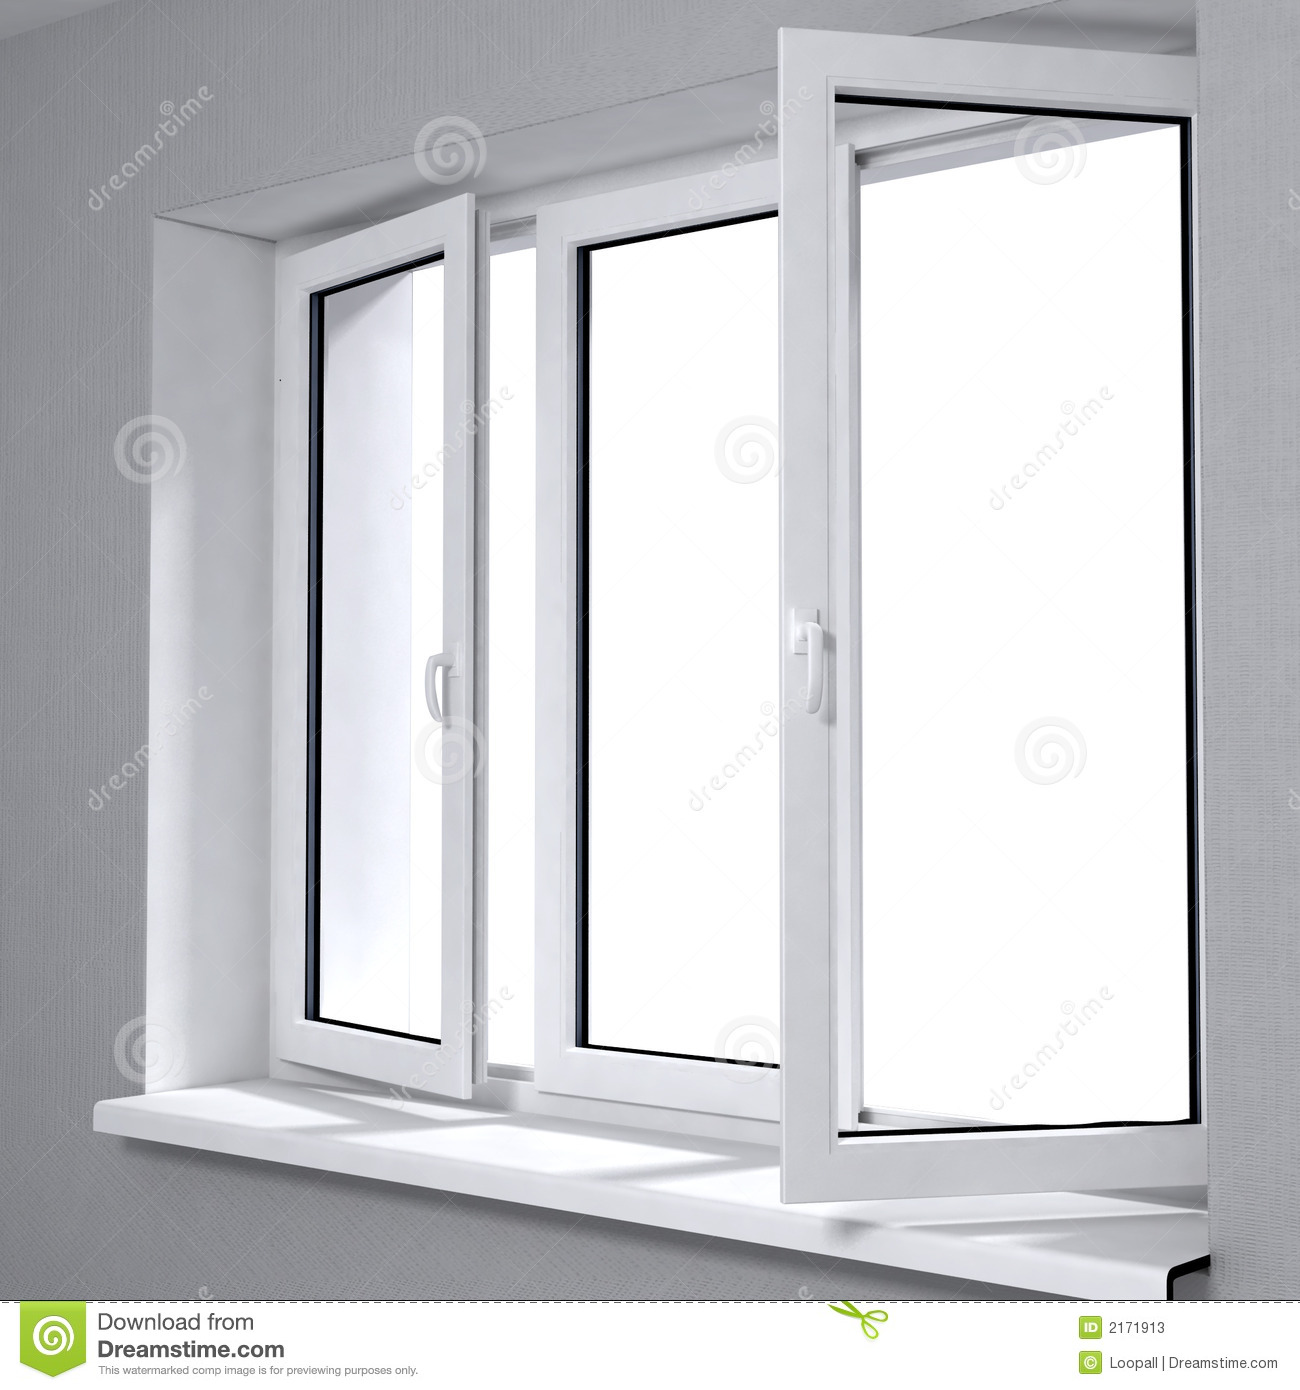 New plastic window stock image image of frame dreaming for Window plastic